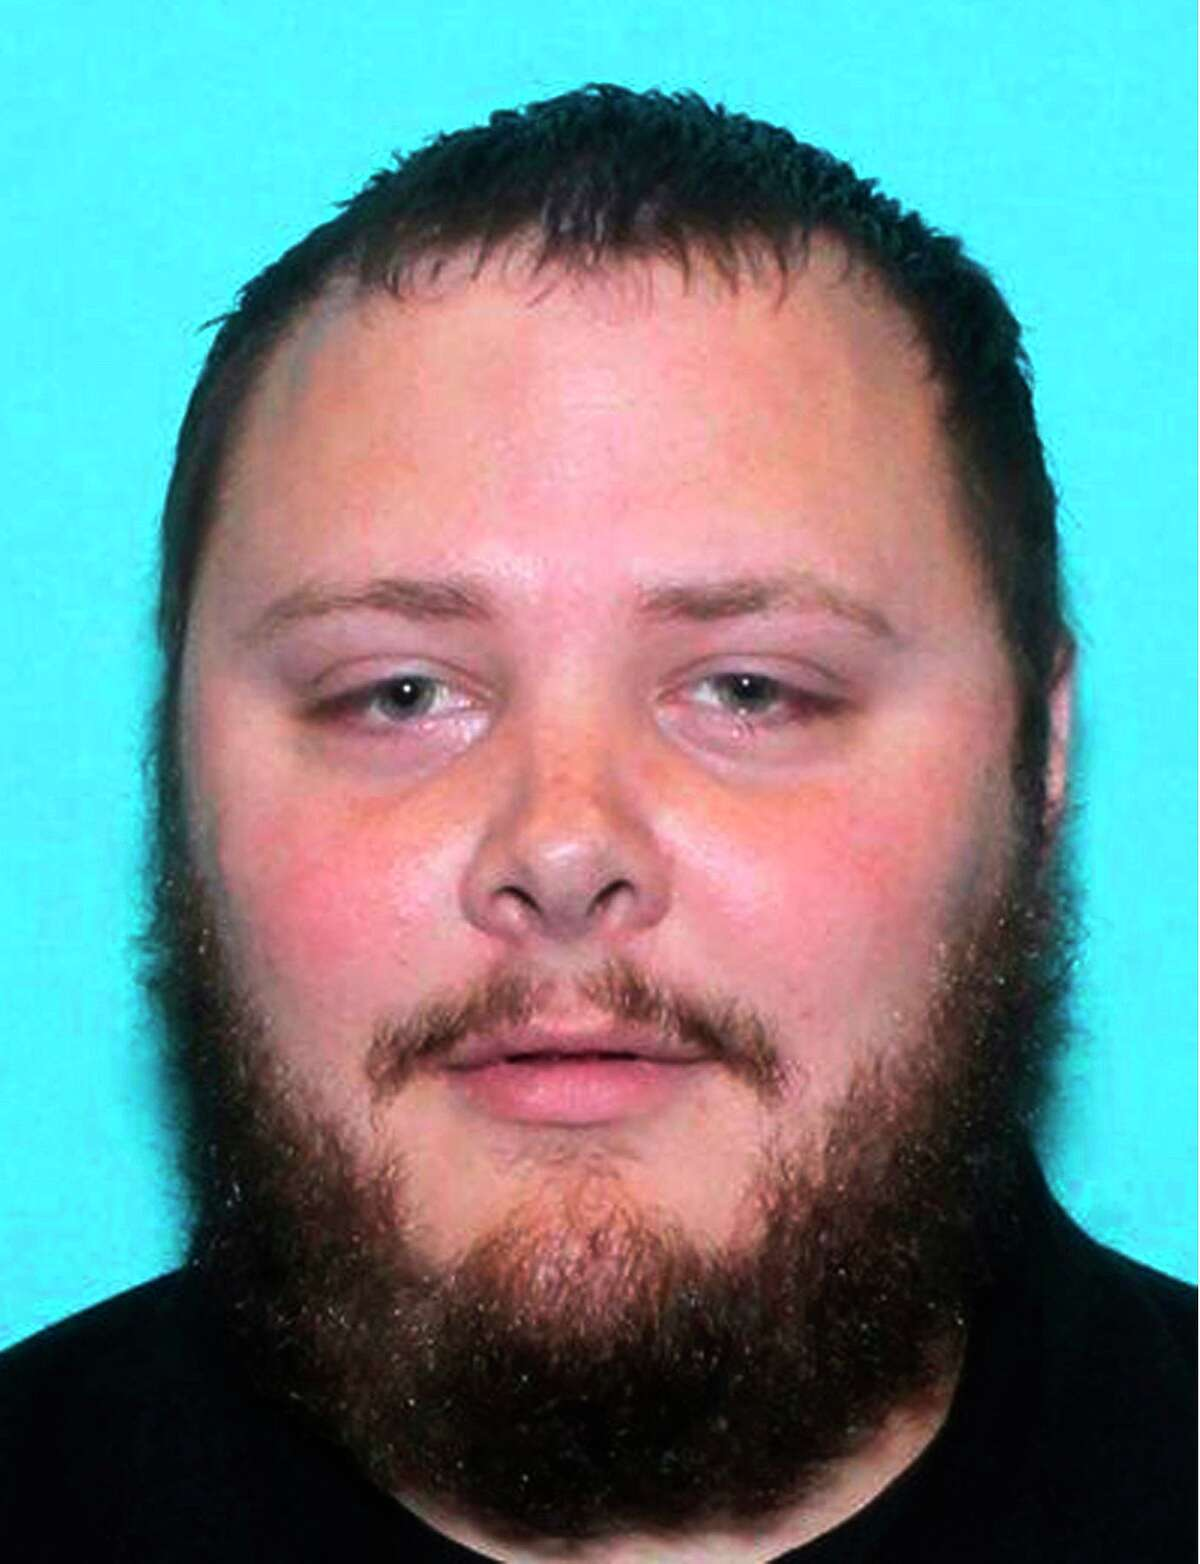 This undated file photo provided by the Texas Department of Public Safety shows Devin Patrick Kelley, the gunman who killed more than two dozen people in Sutherland Springs in 2017. (Texas Department of Public Safety via AP, File)